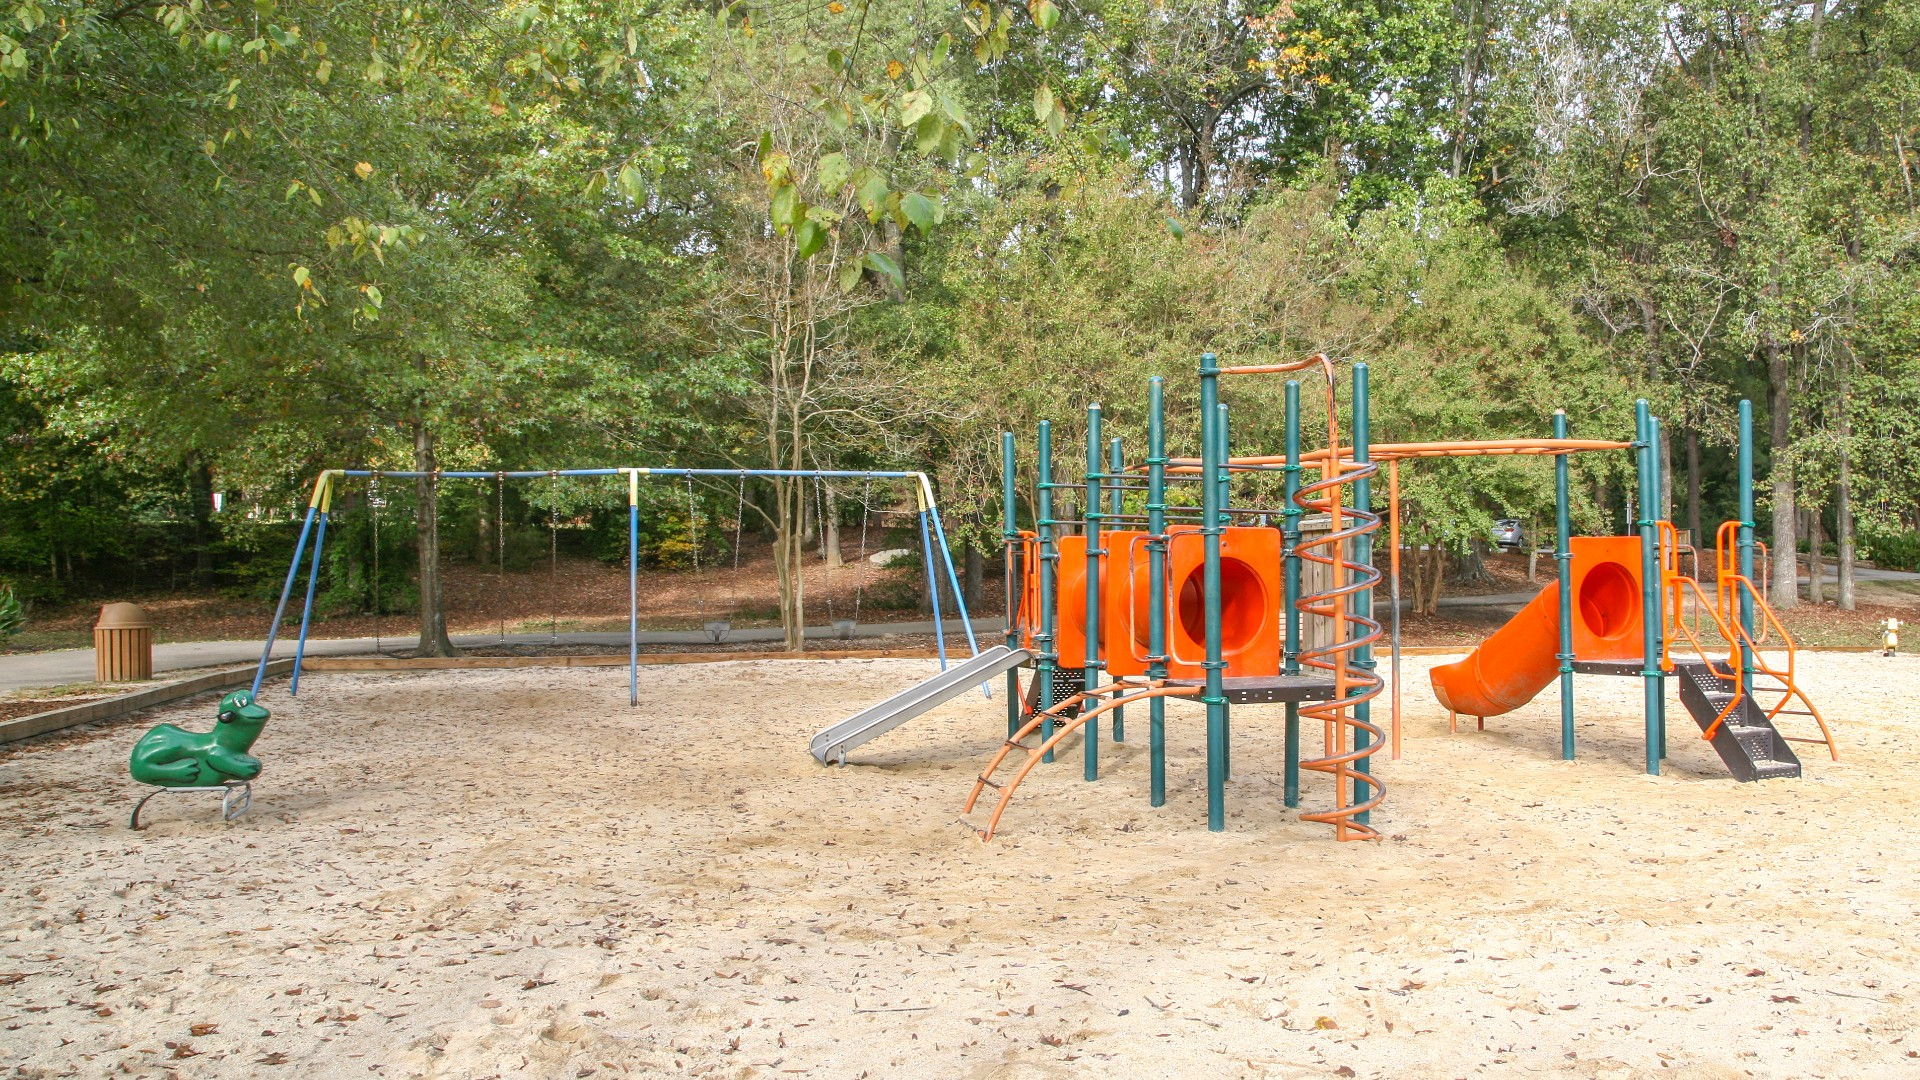 A playground with swings, slides, and more at Brentwood Park